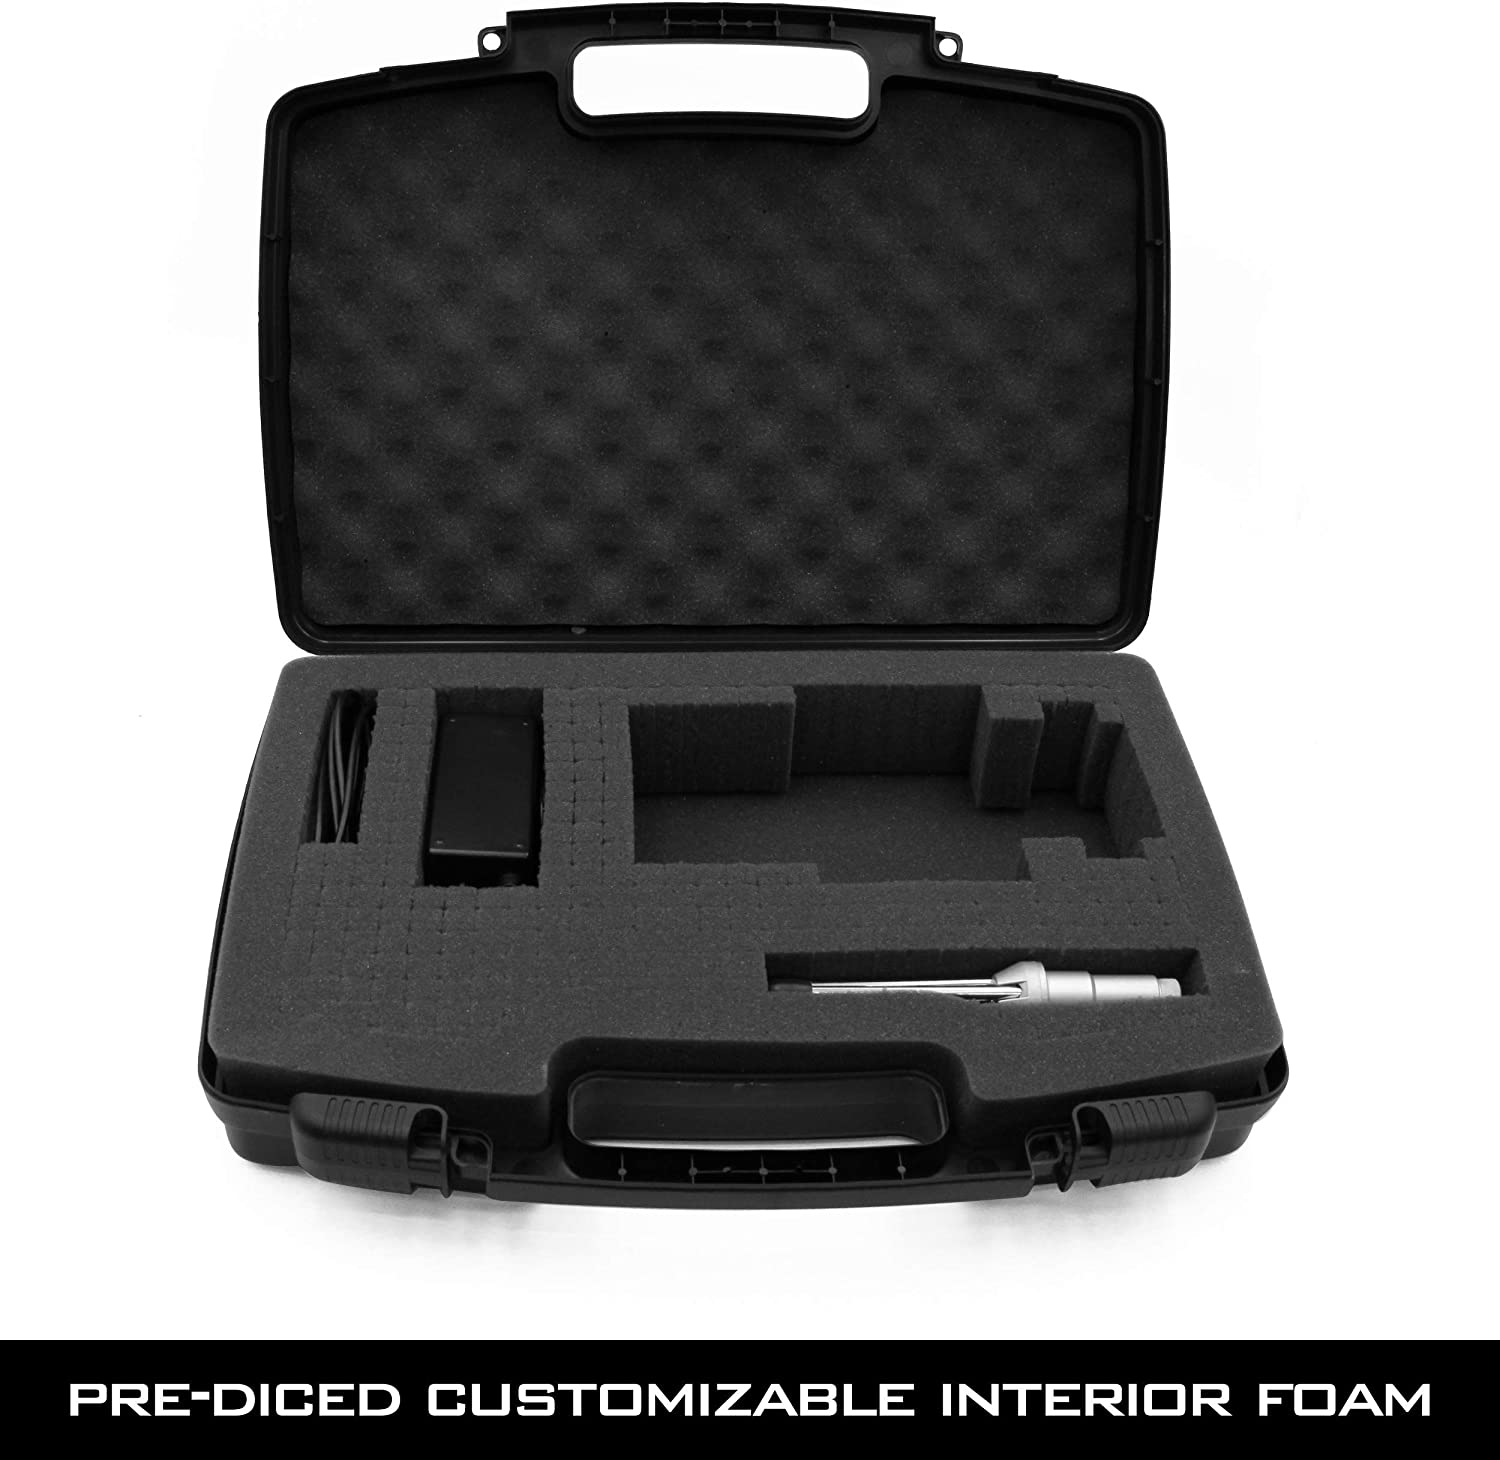 CASEMATIX Travel Case Compatible with Zoom H8 Handy Recorder CASE ONLY Padlock Rings /& Accessory Storage Hard Shell Carrier for Audio Recorder and Accessories with Customizable Foam Interior